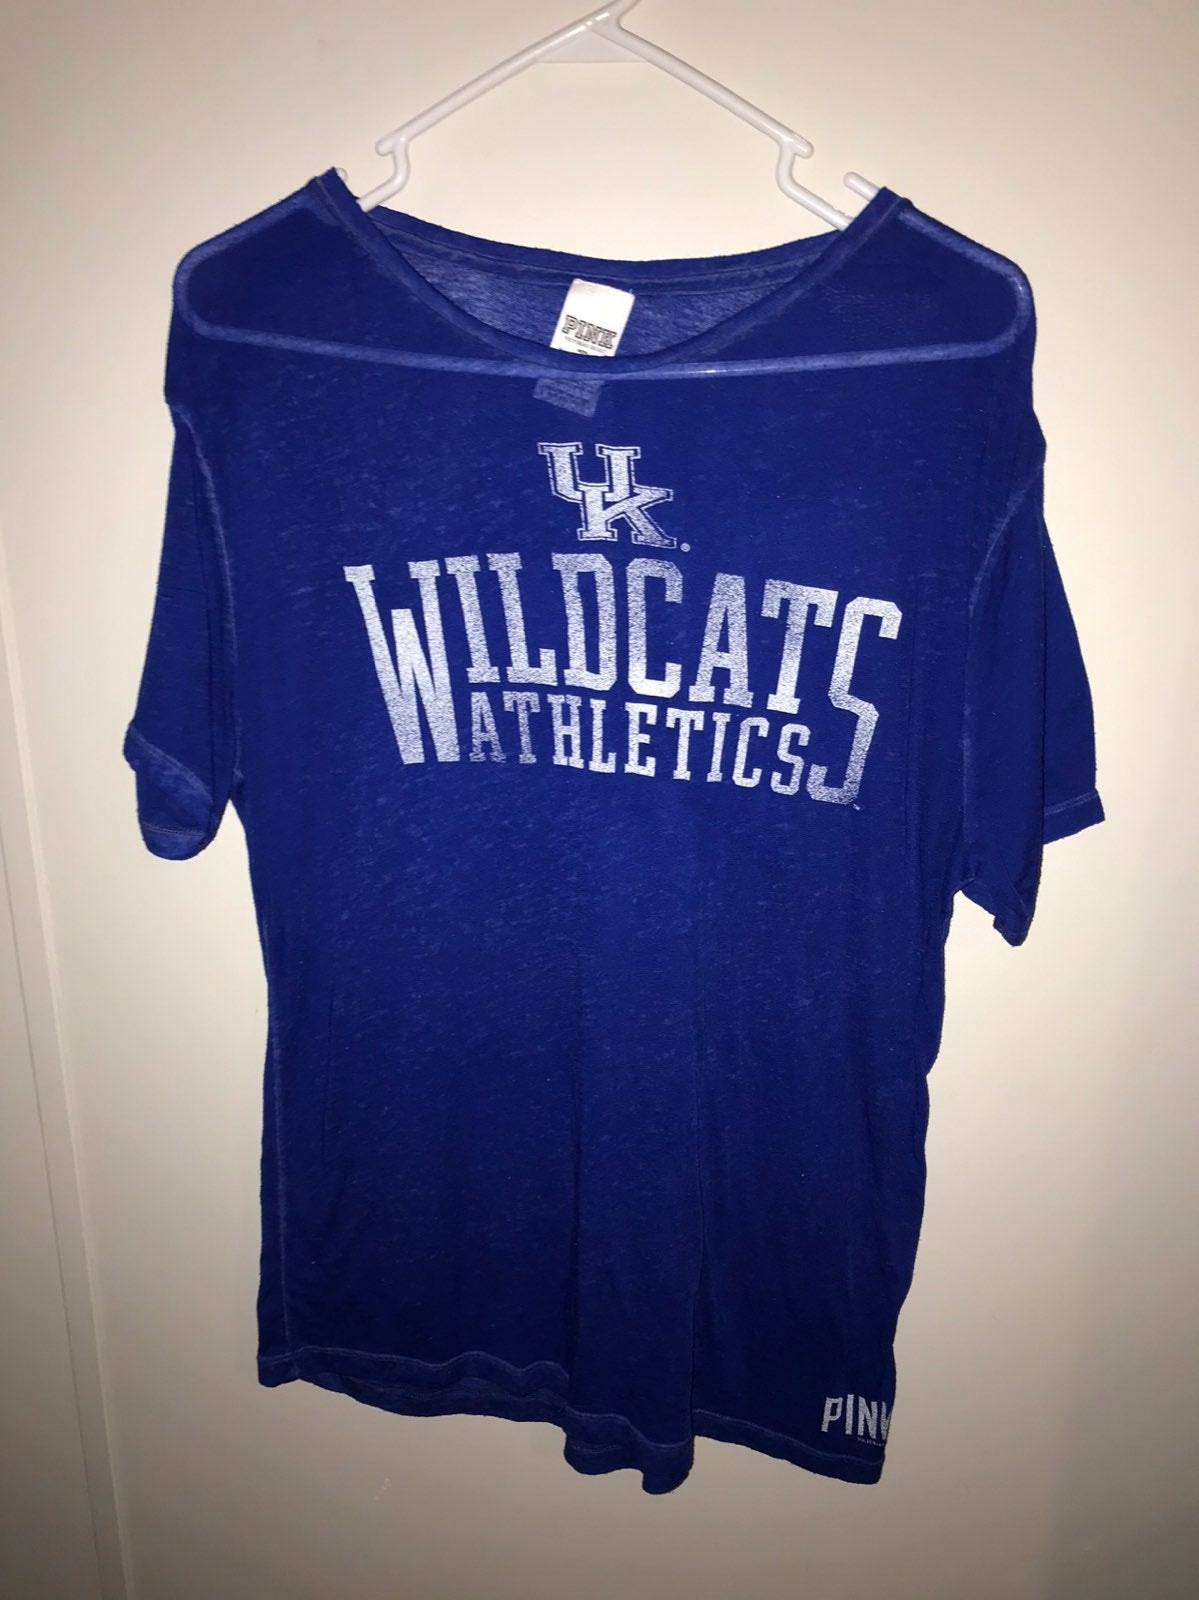 PINK vs Wildcats tee